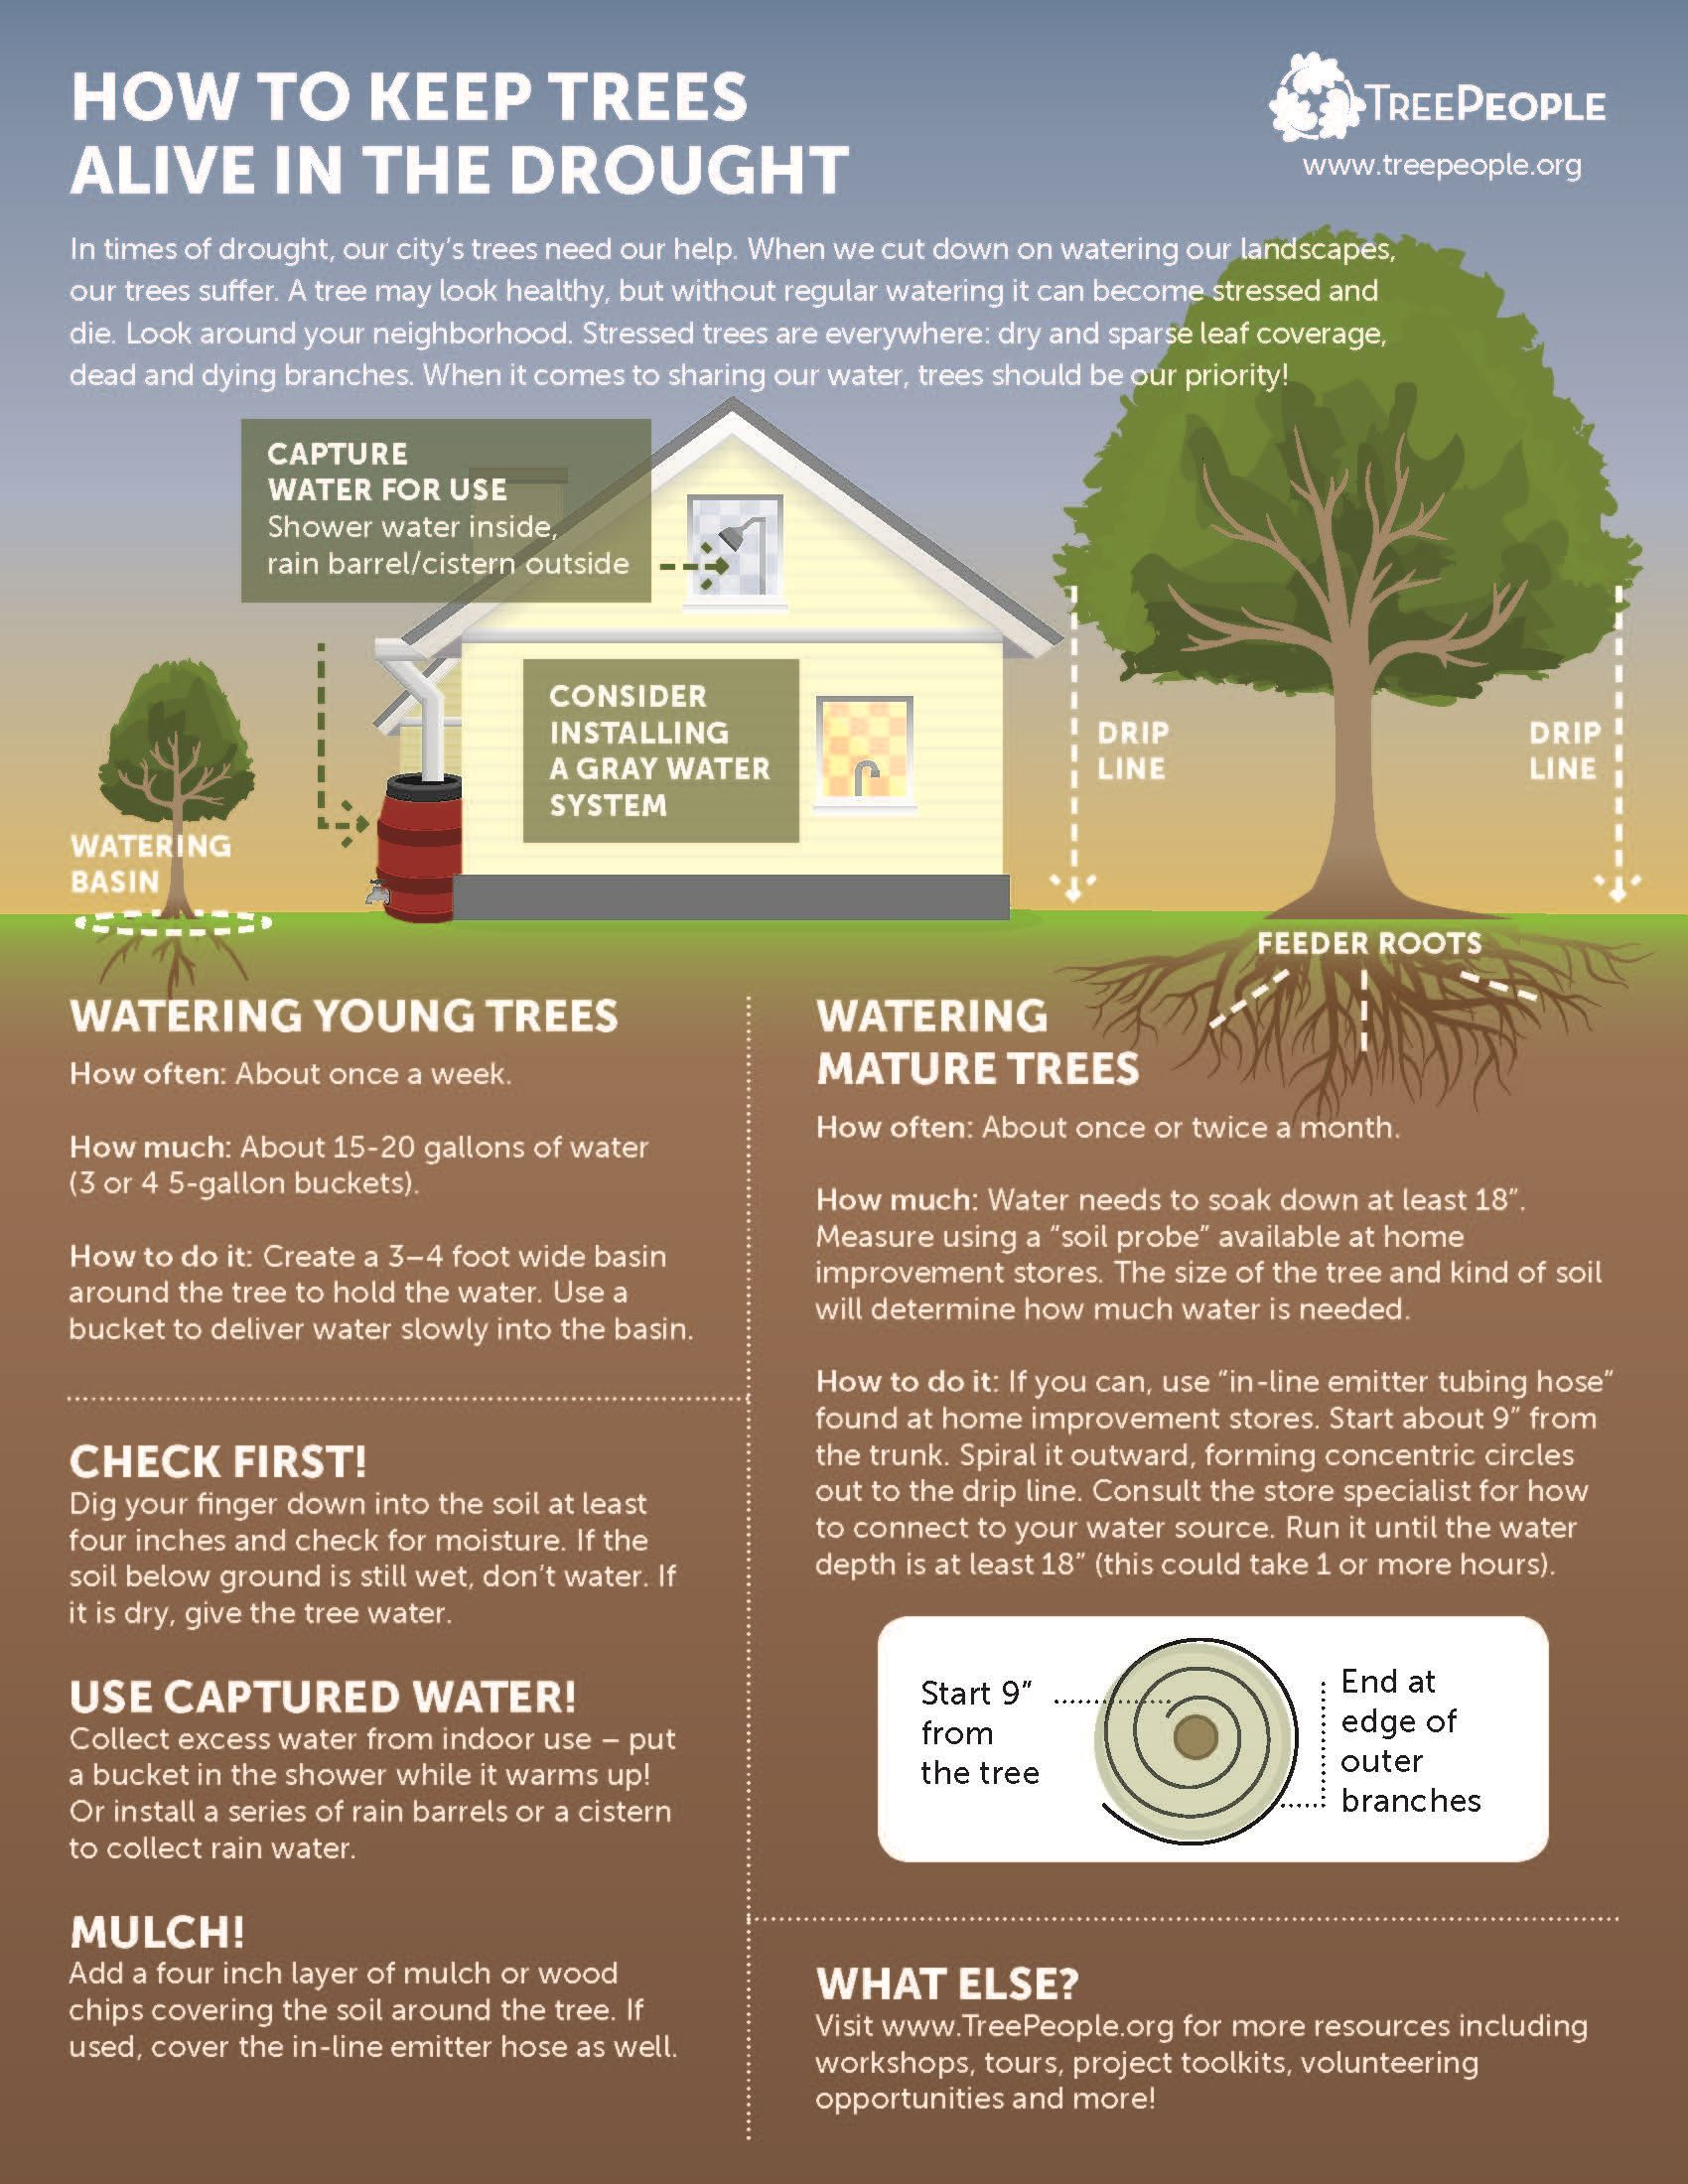 TreePeople - How to Keep Trees Alive in the Drought